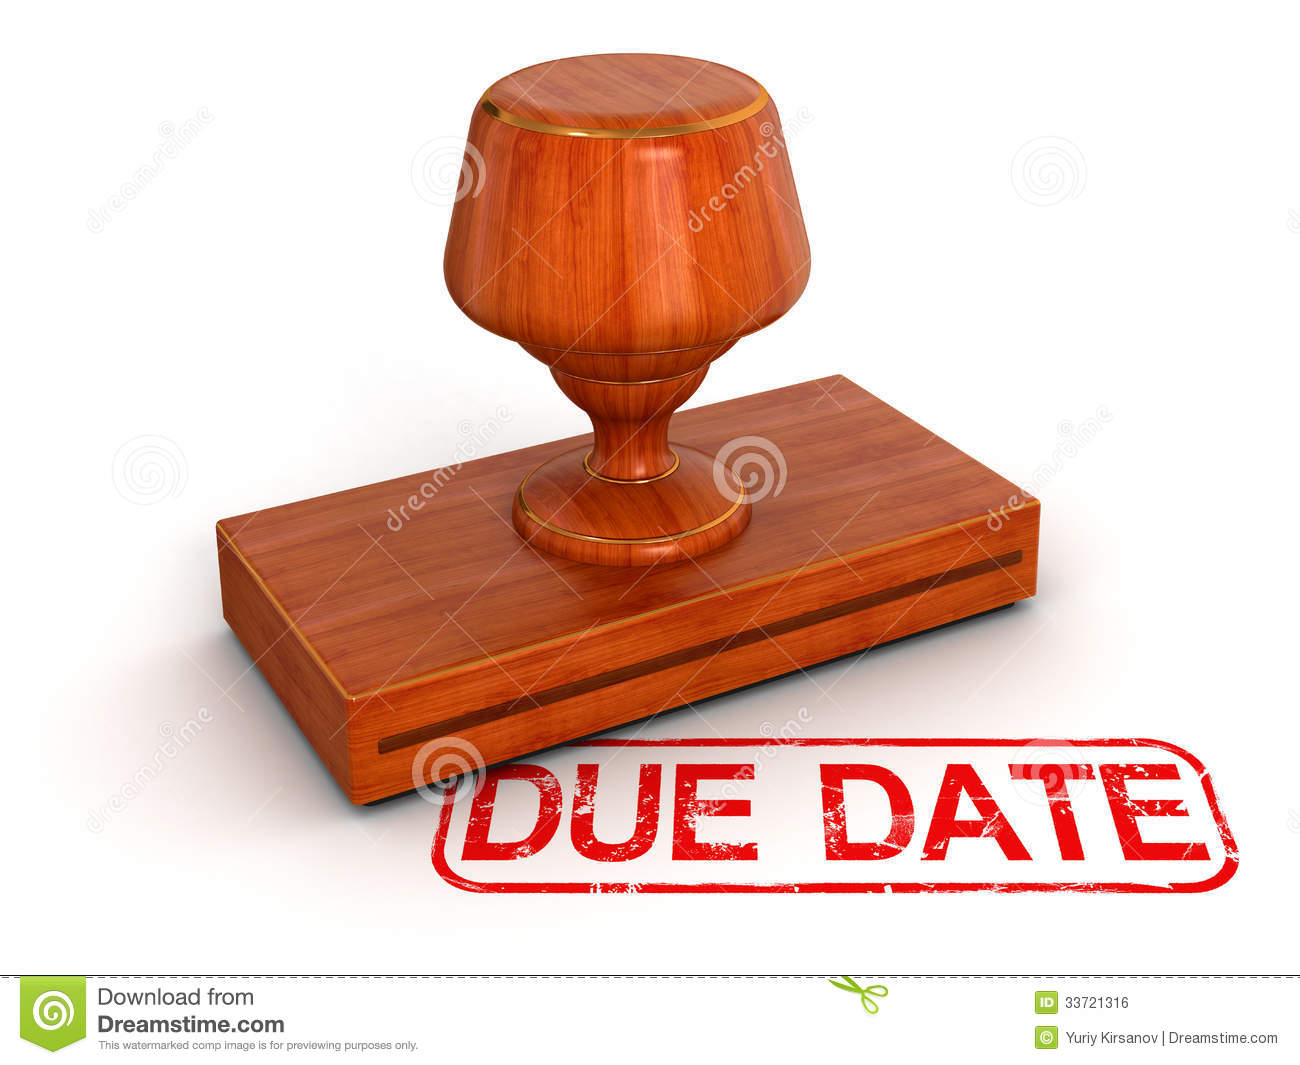 Date clipart due date  Assignment Date Due Clipart